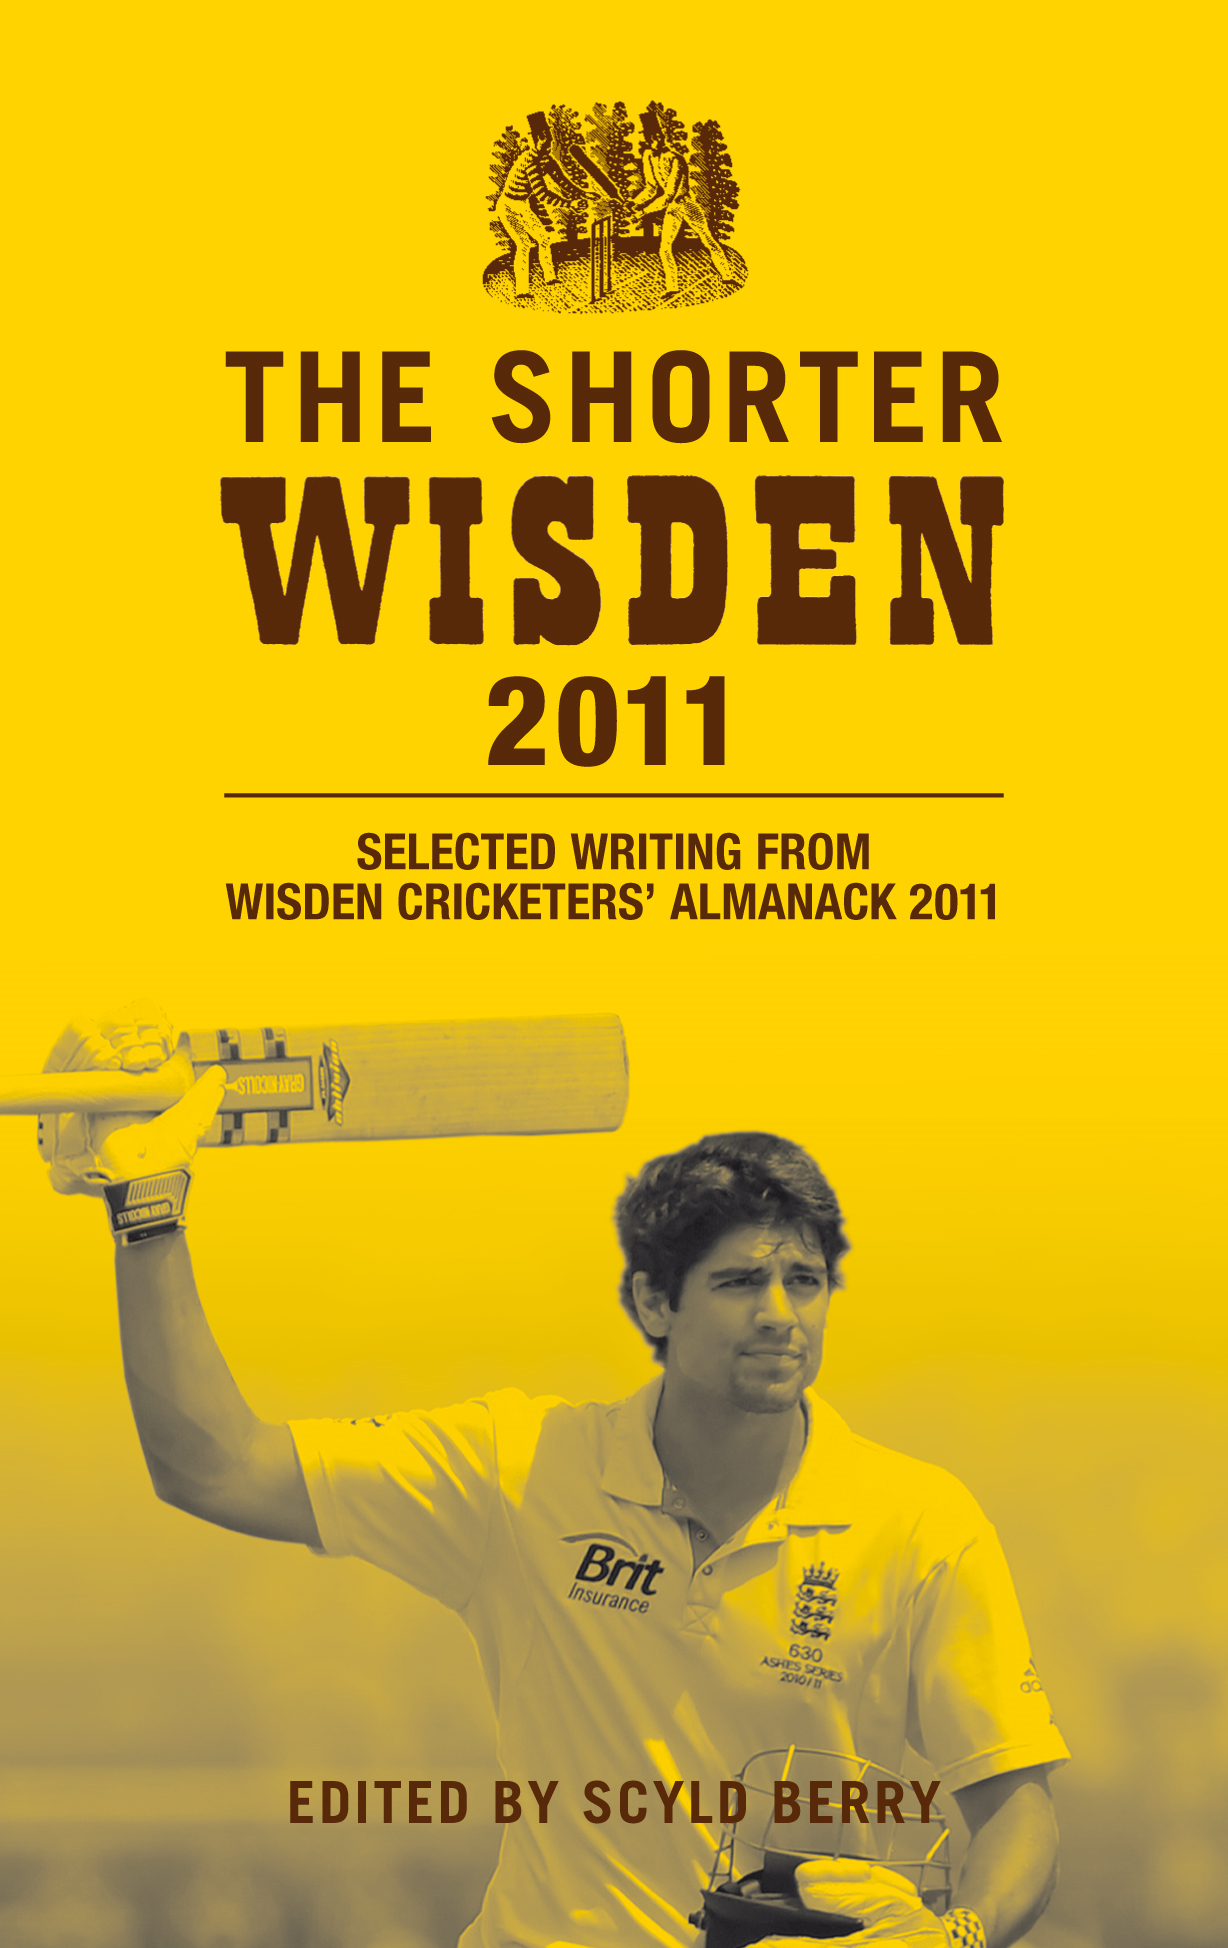 The Shorter Wisden 2011 Selected writing from Wisden Cricketers' Almanack 2011